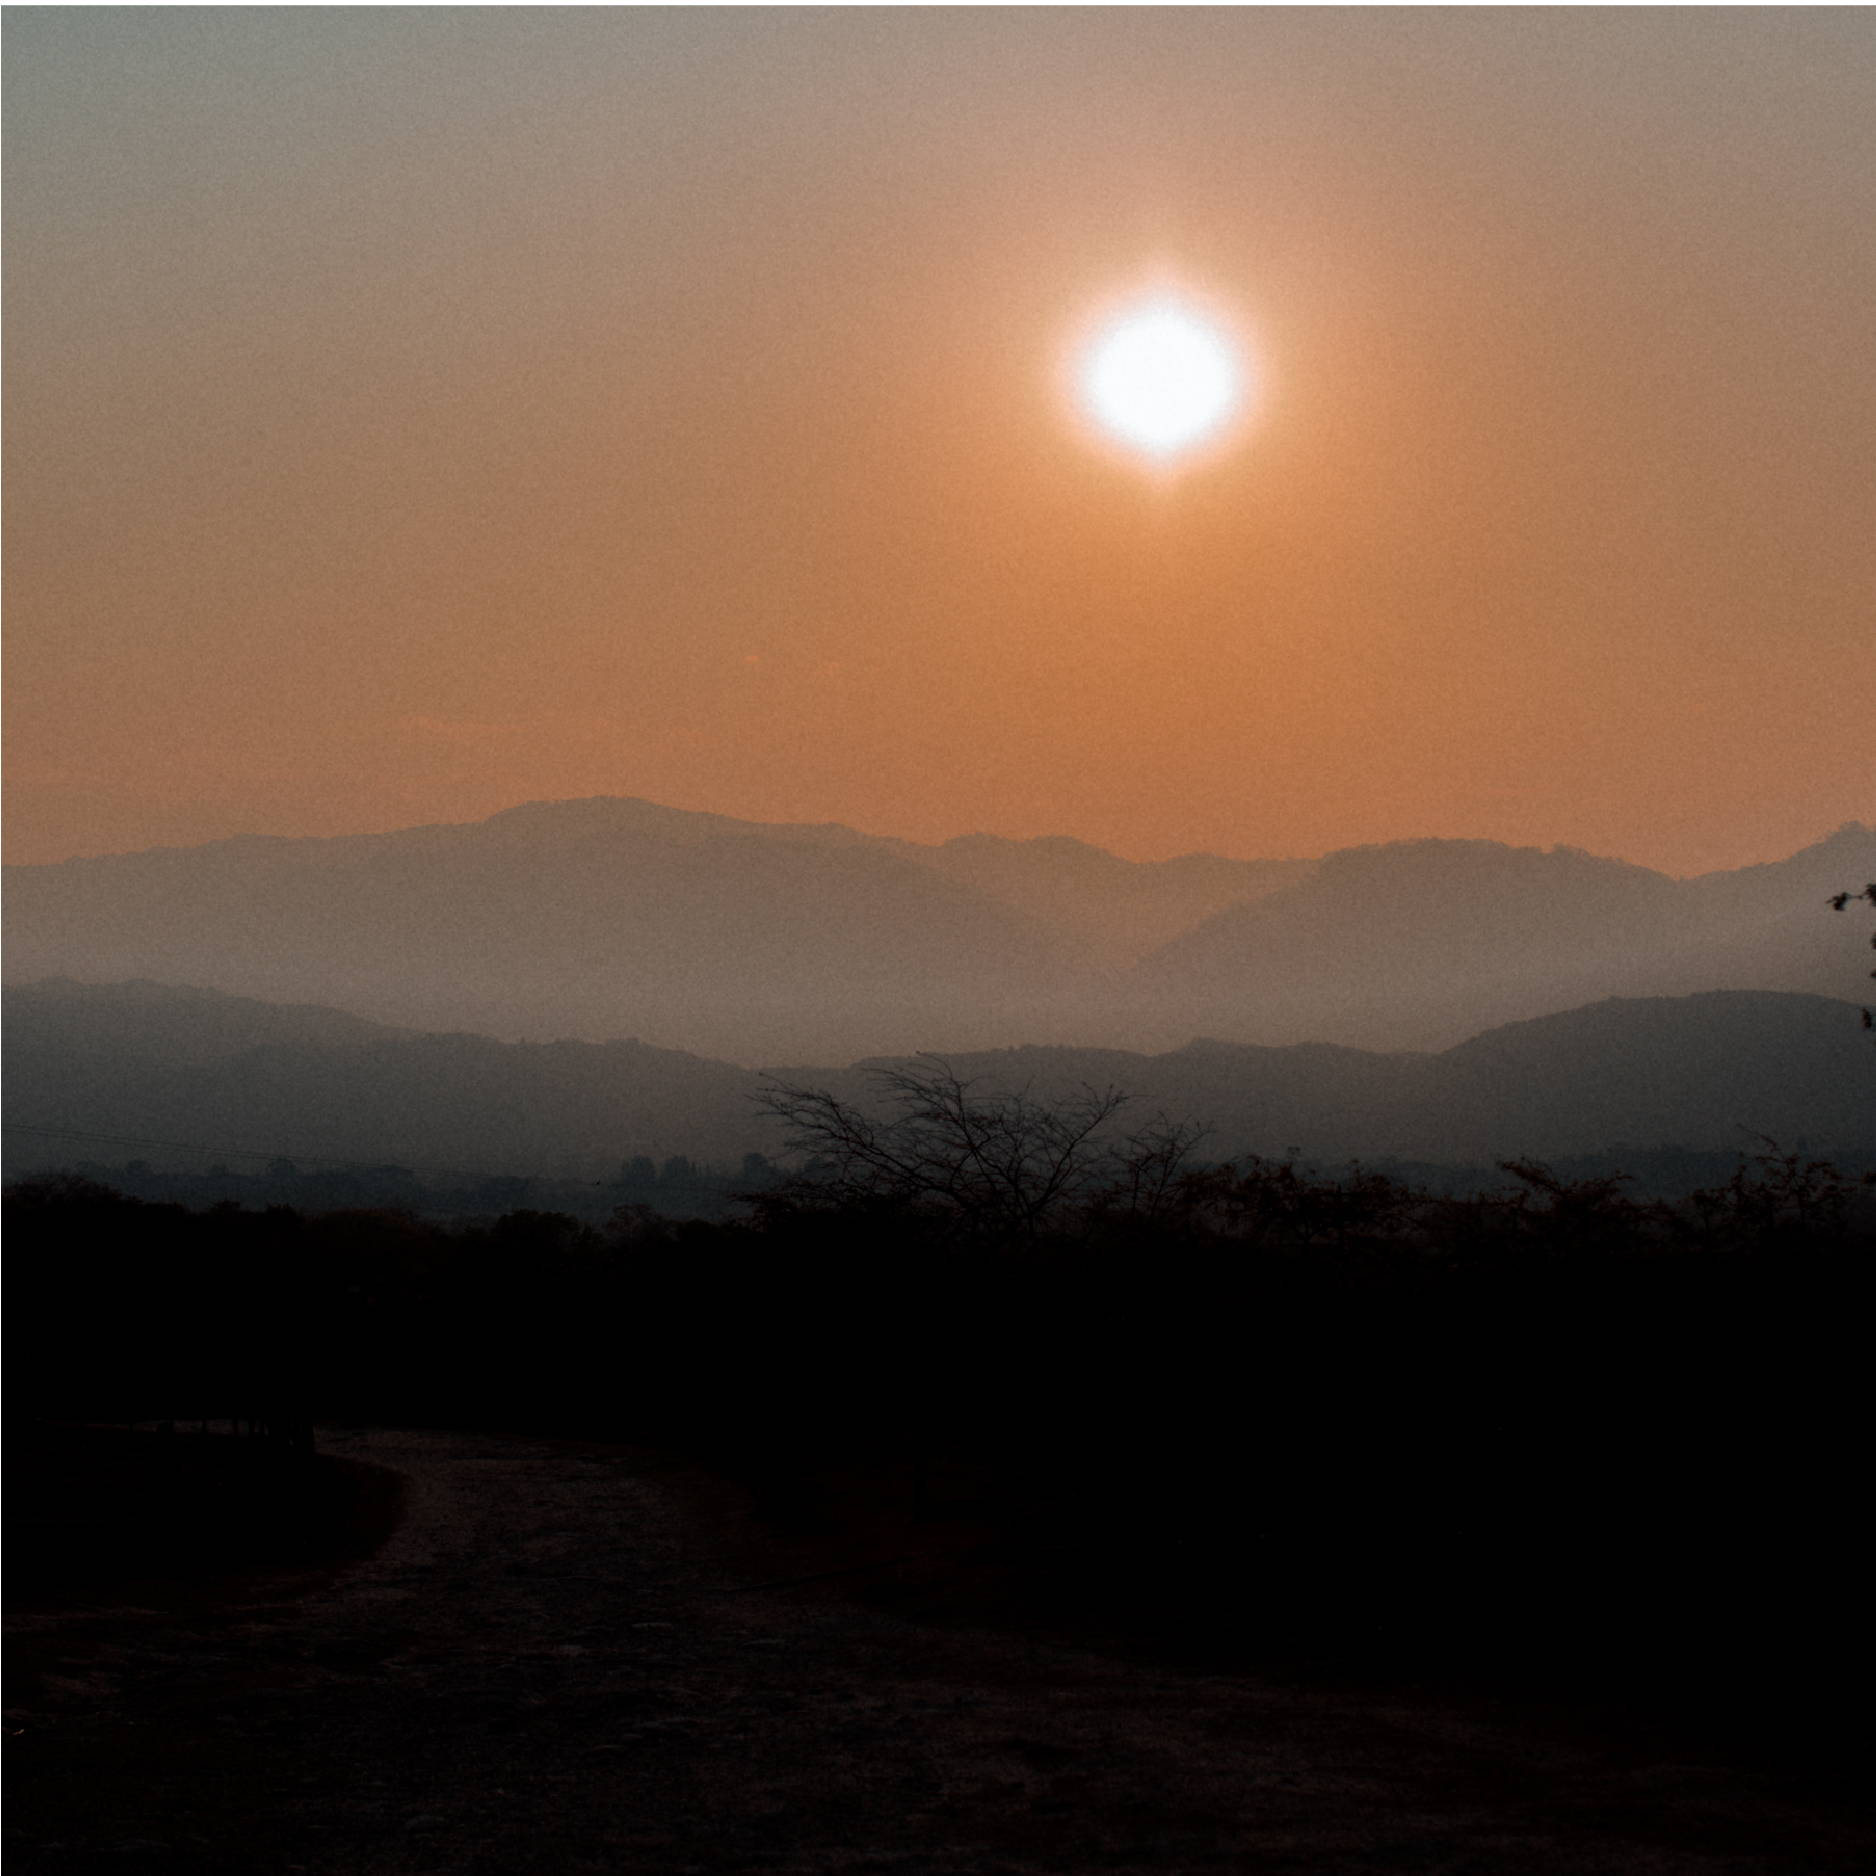 The sun sets over the silhouetted Zamarano Valley Mountains in Honduras.